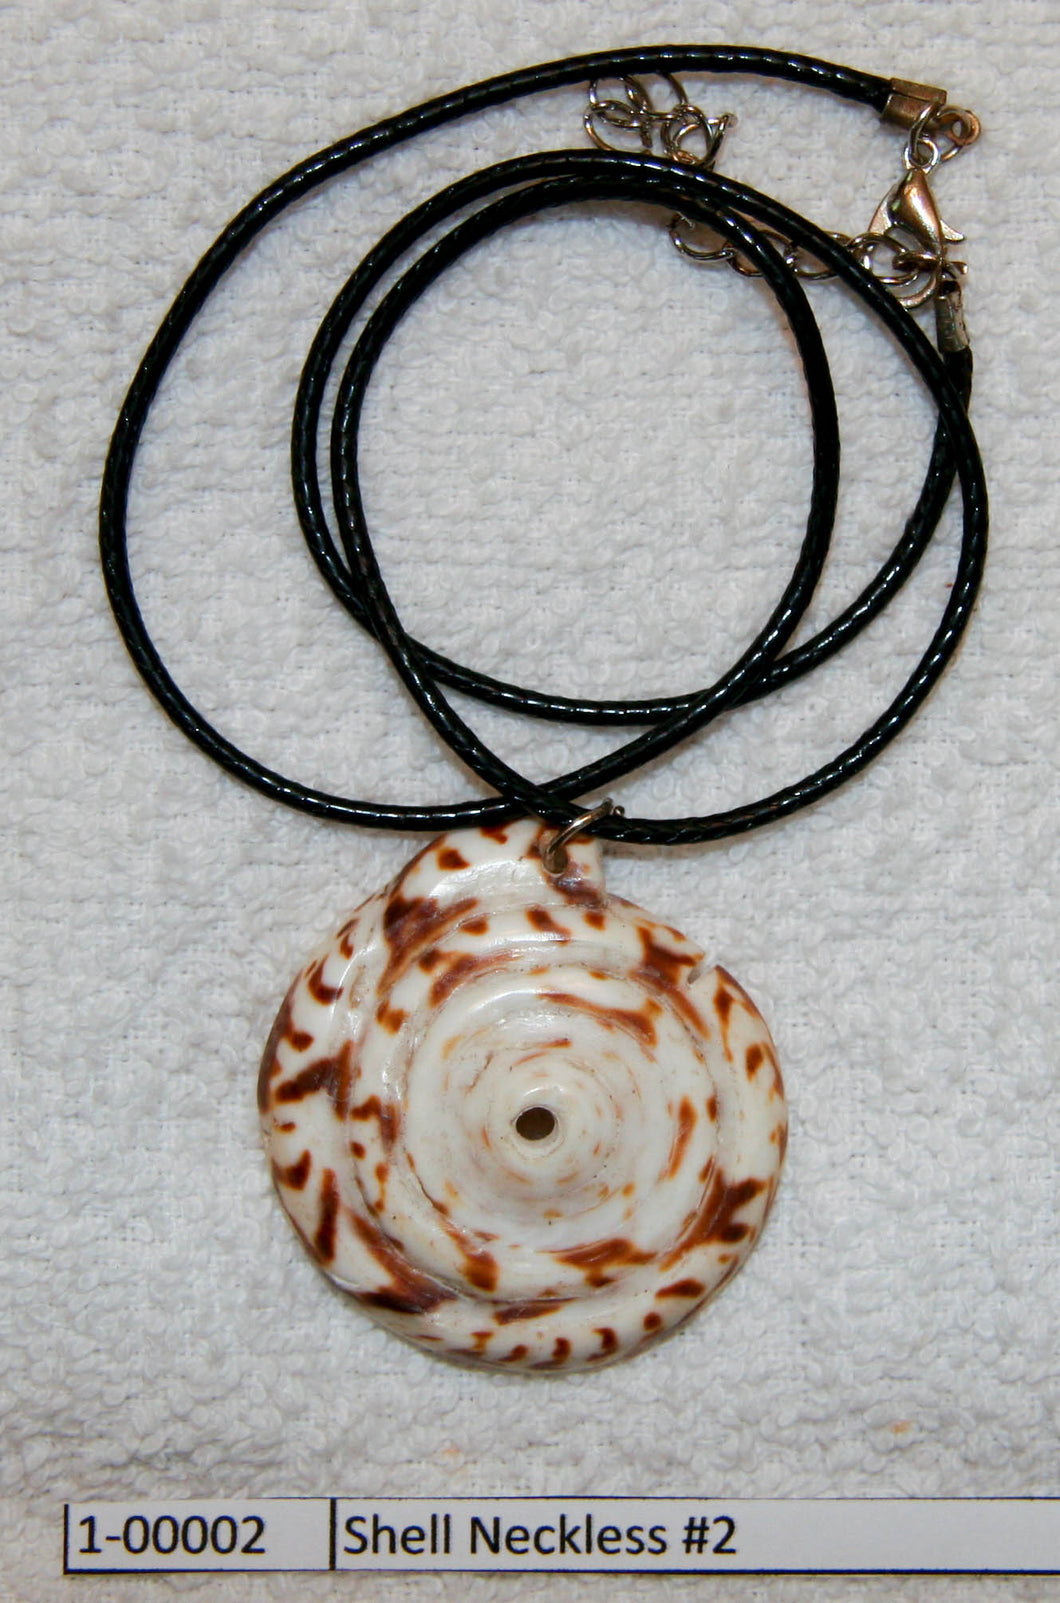 Shell Neckless #2